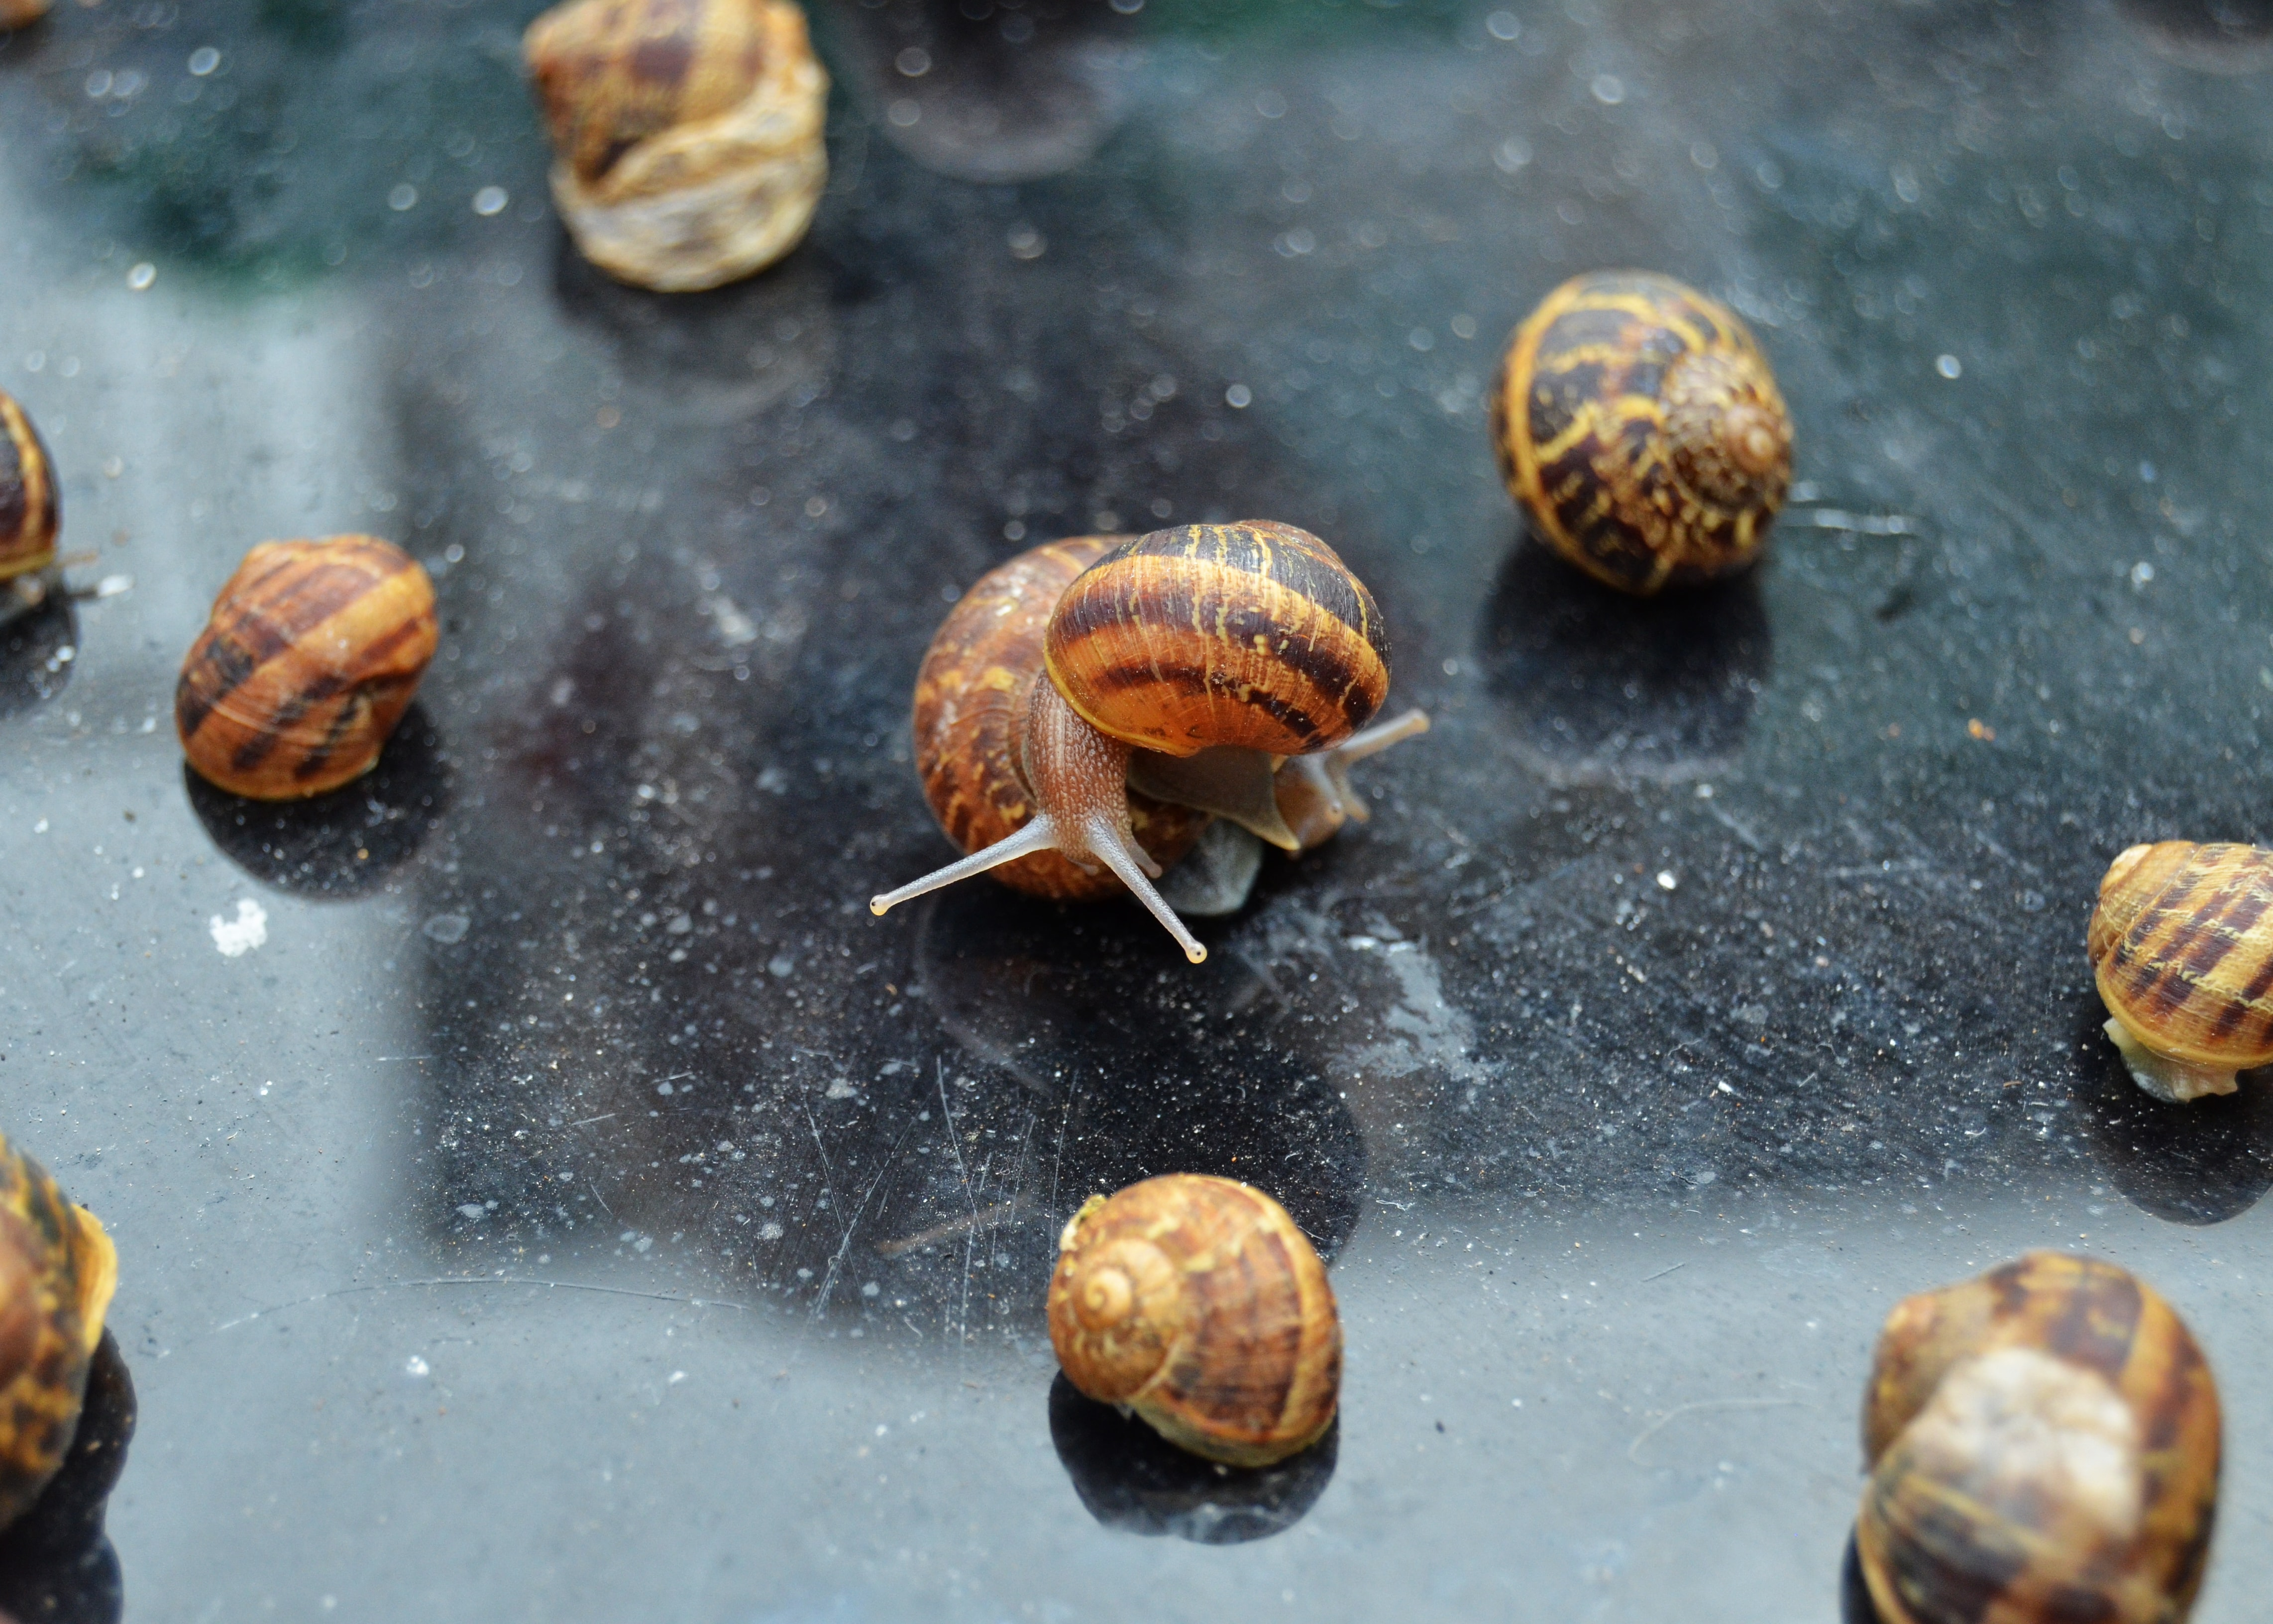 brown-and-black snails